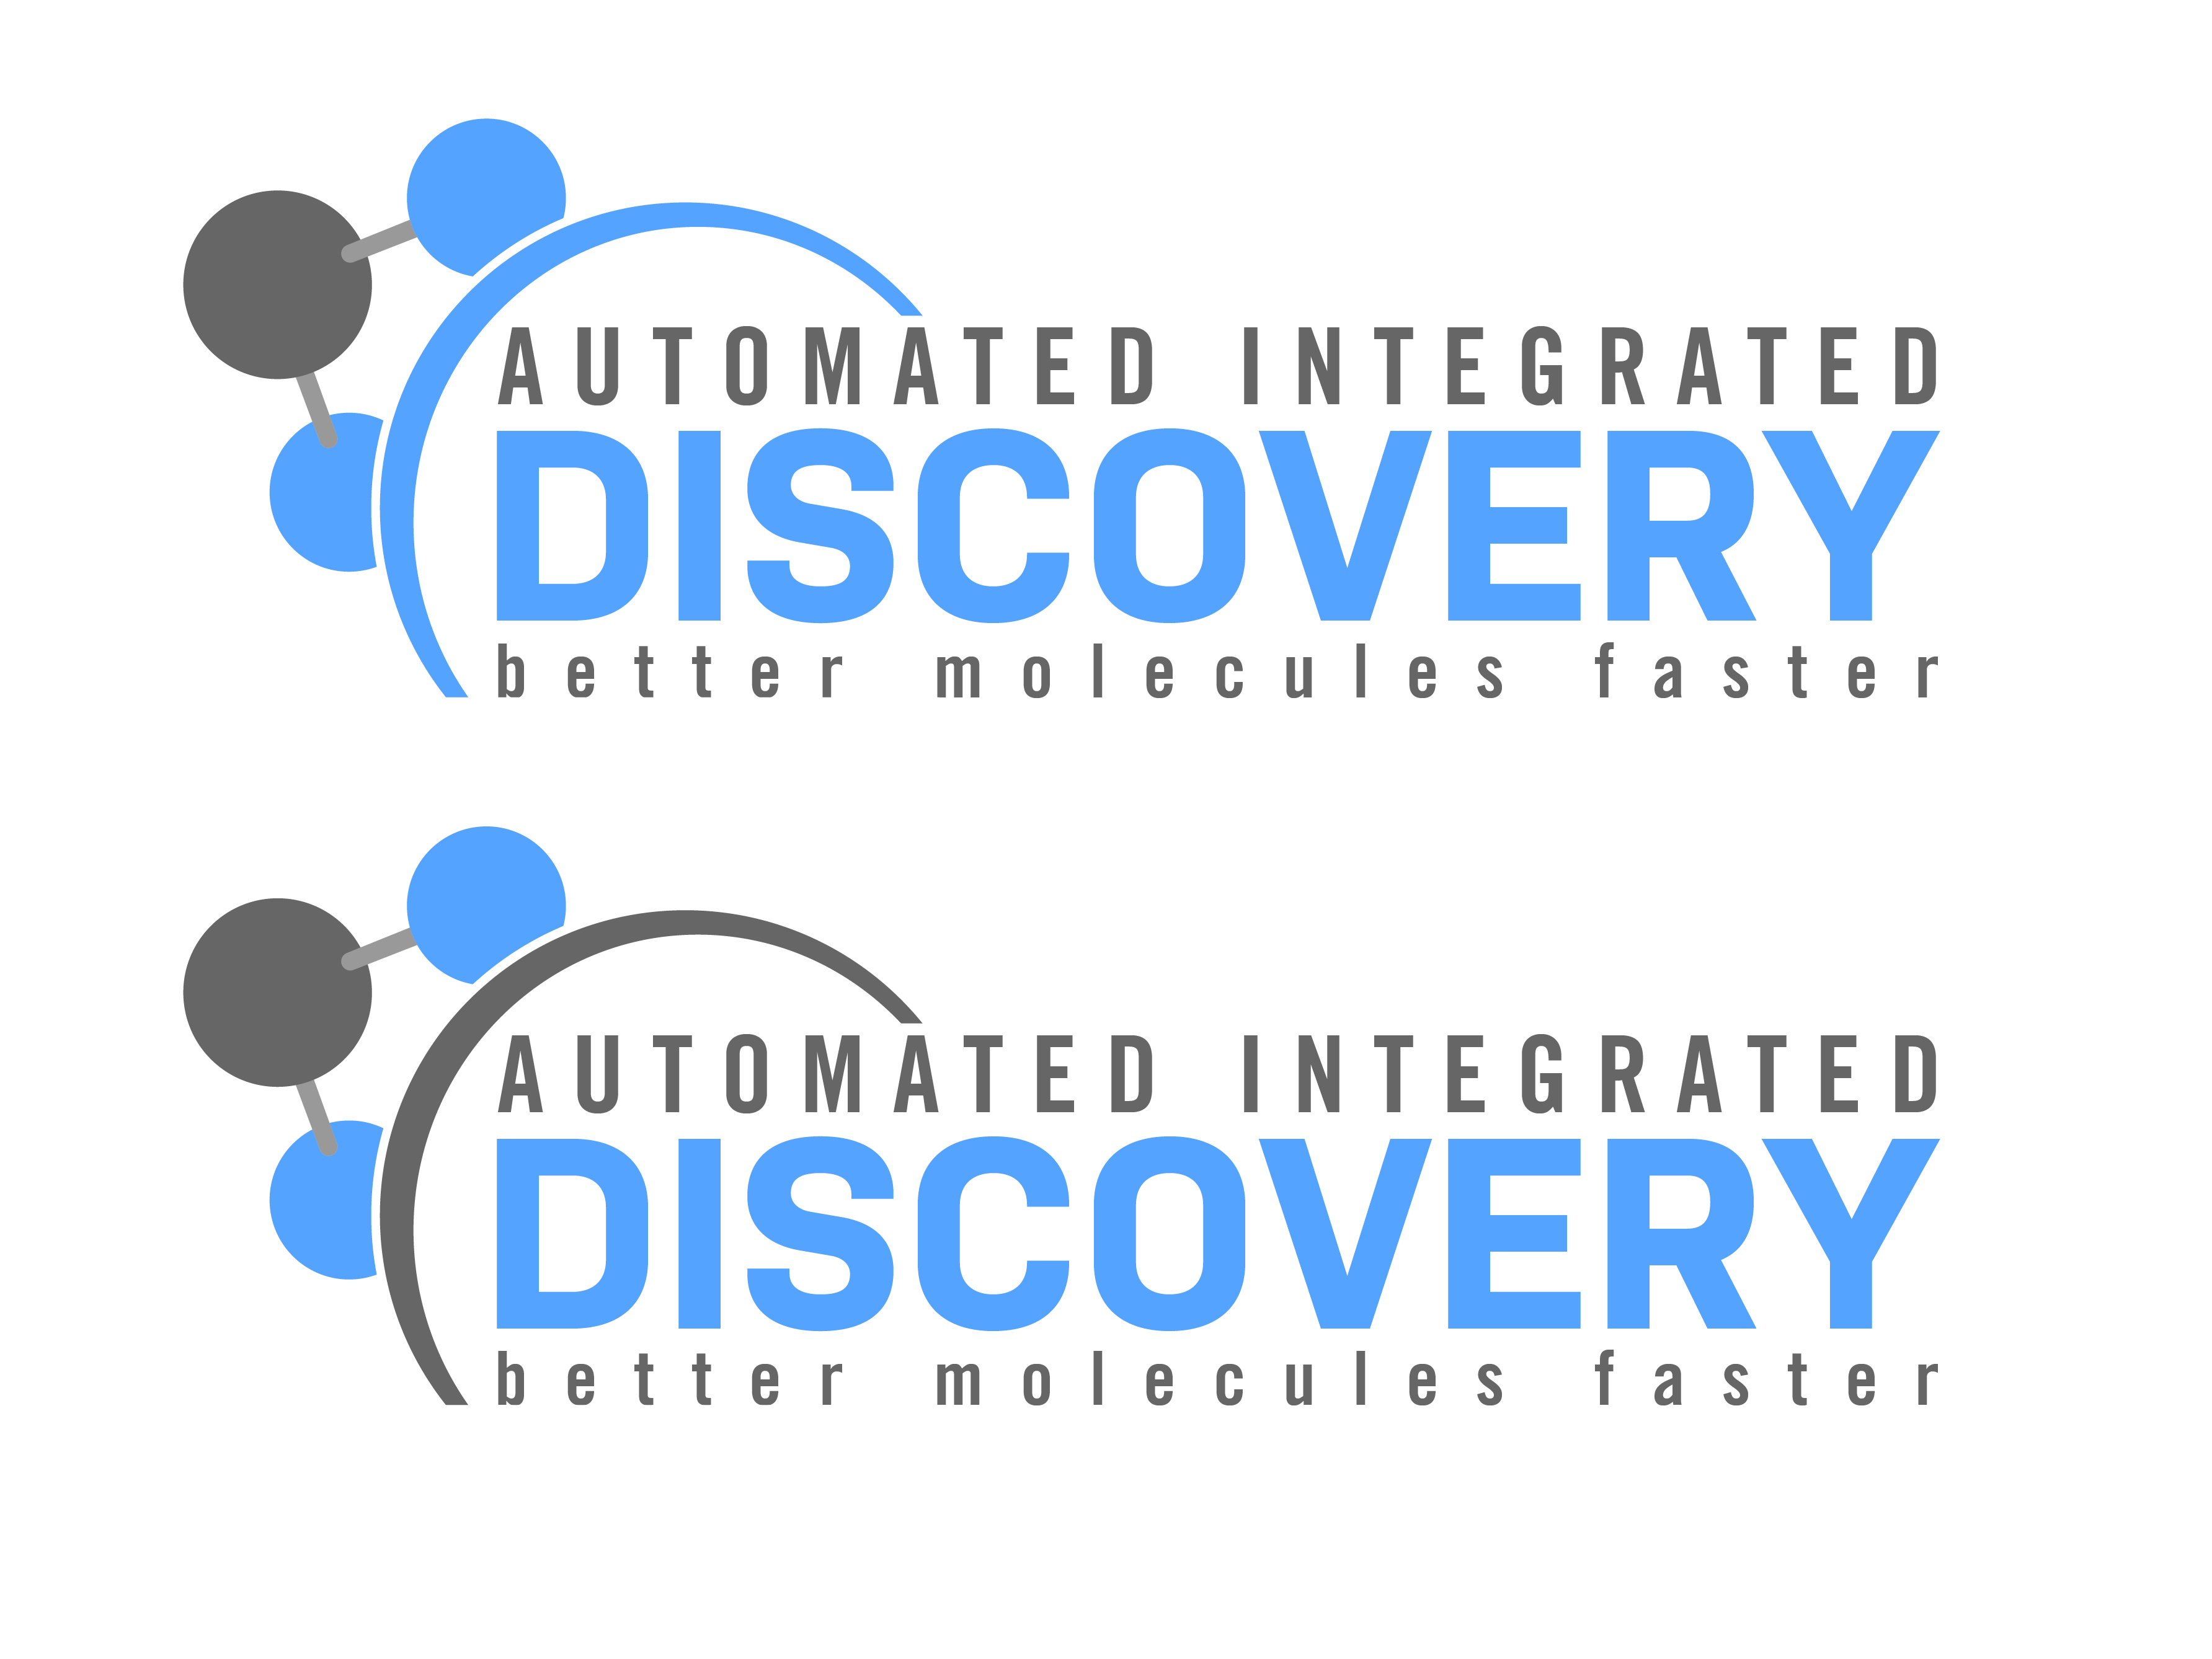 Logo Design by Rob King - Entry No. 87 in the Logo Design Contest Automated Integrated Discovery  Logo Design.